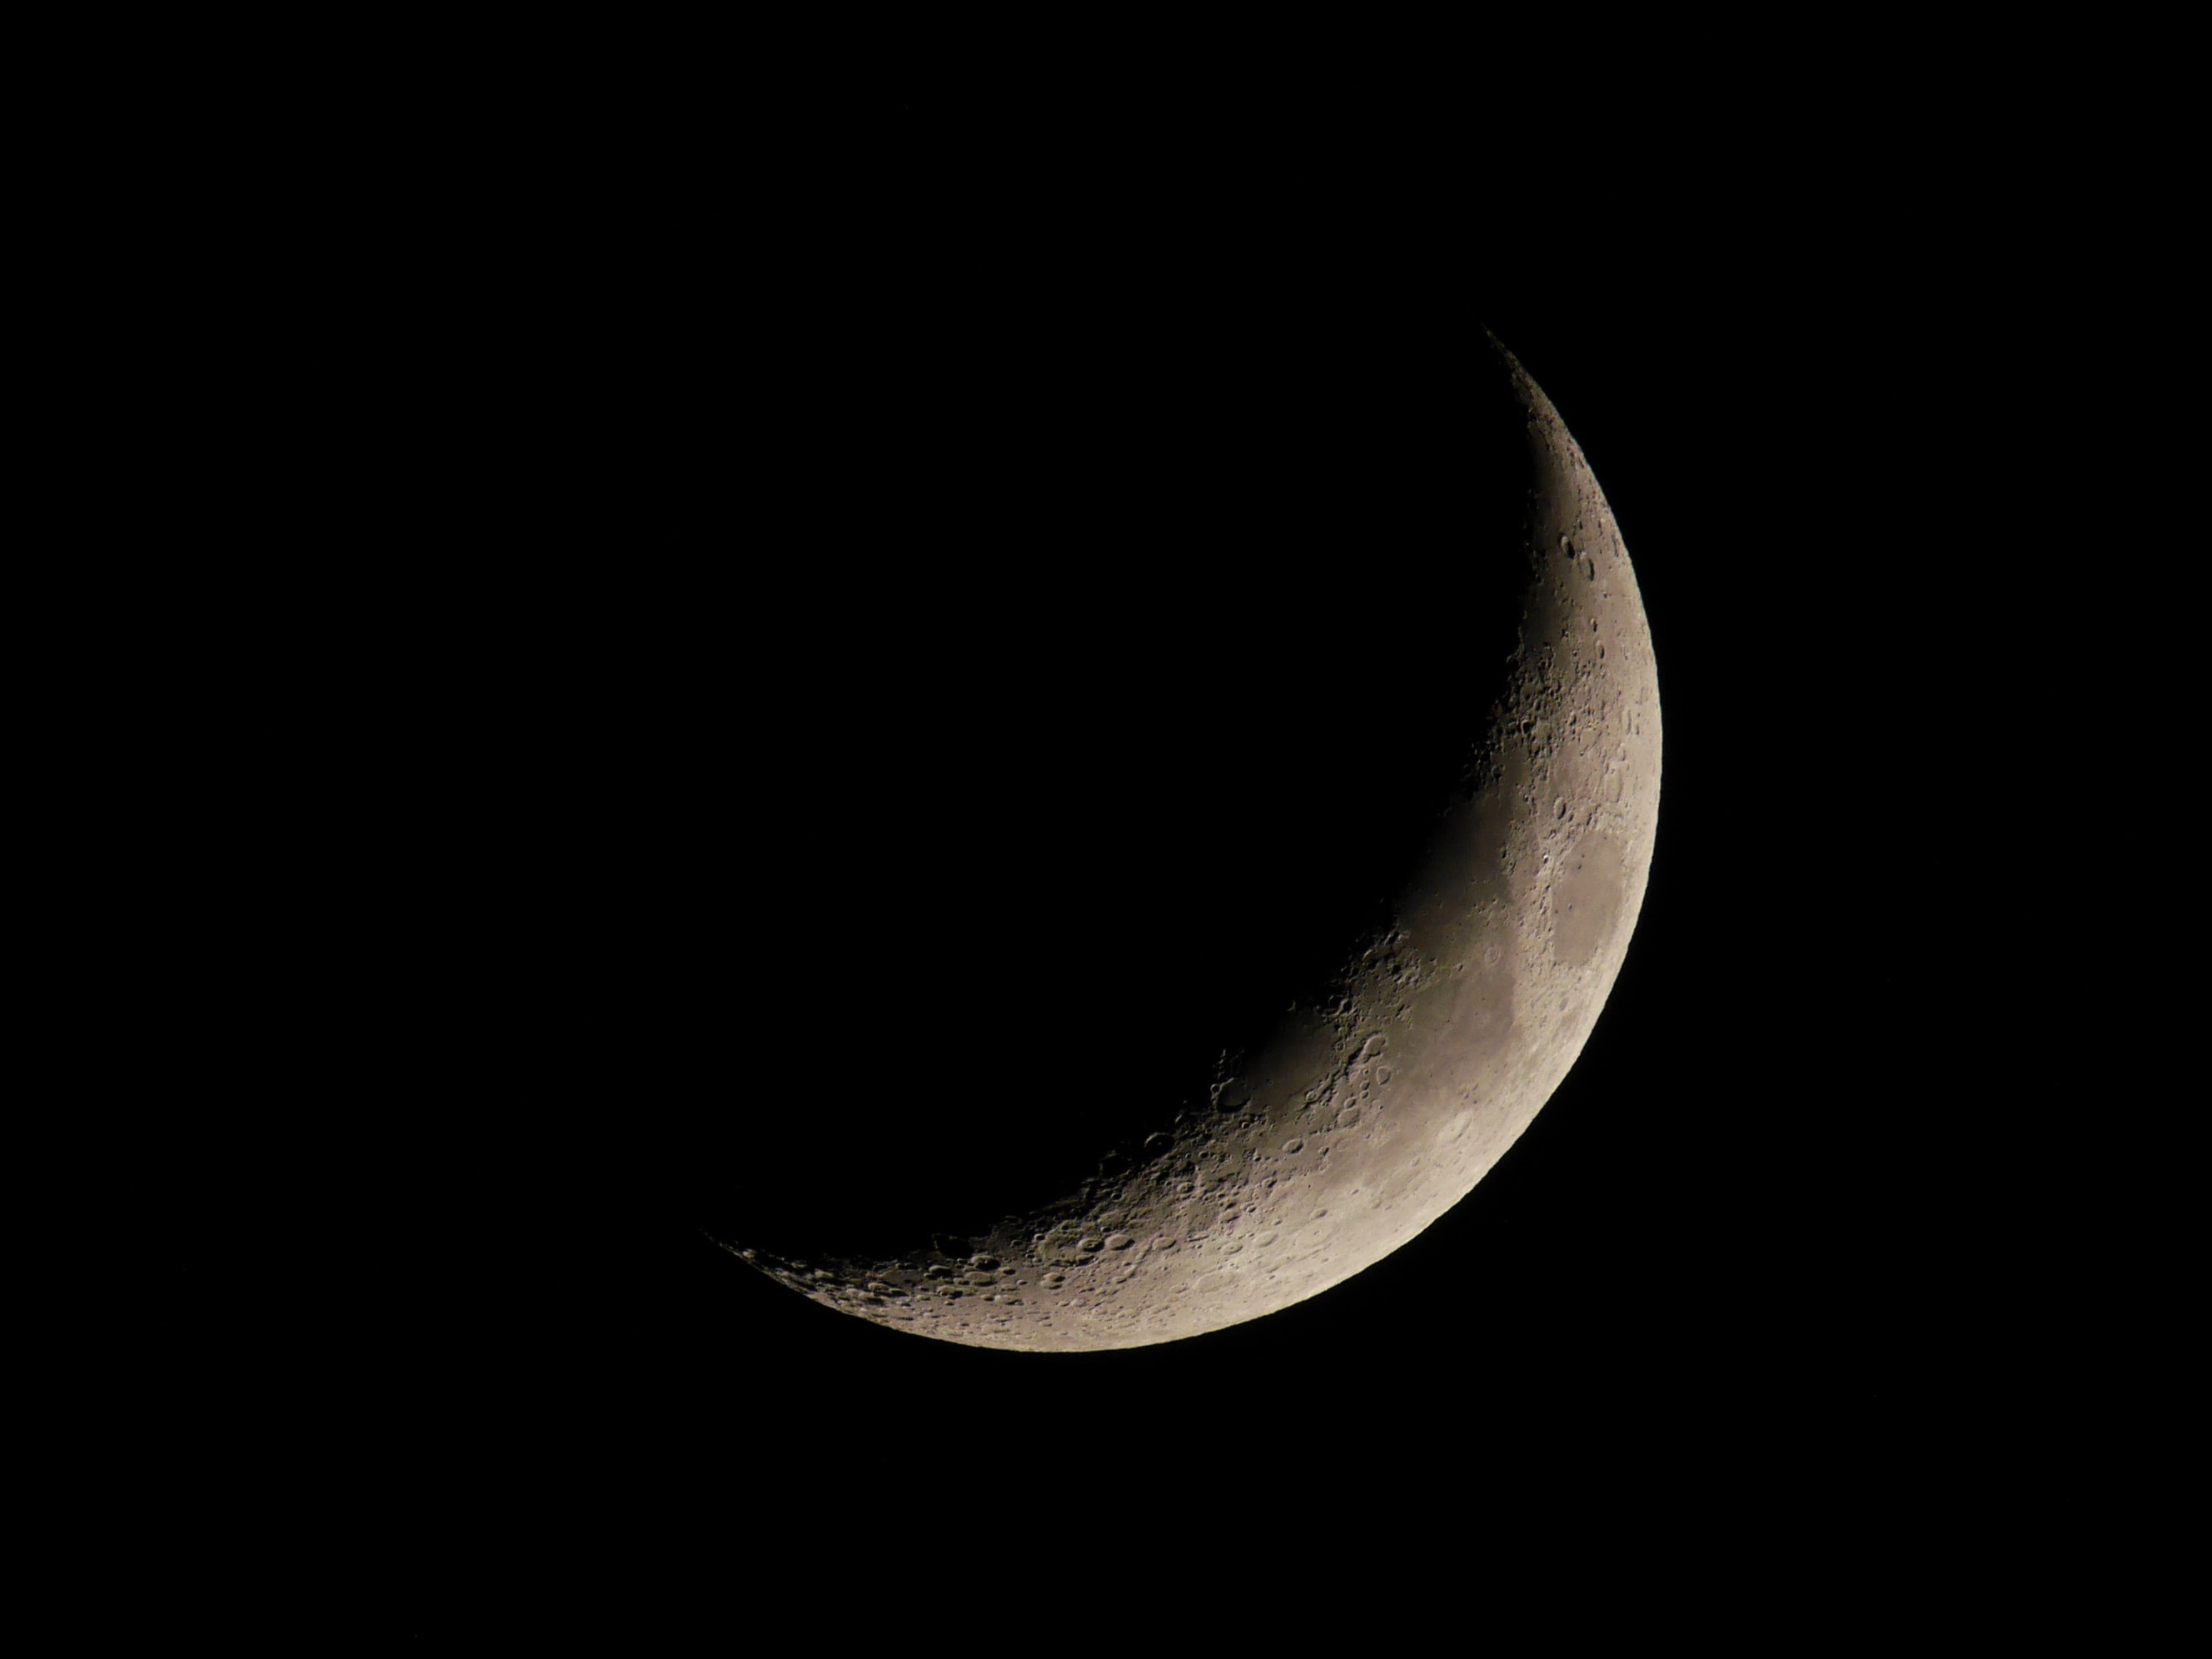 crescent moon at night